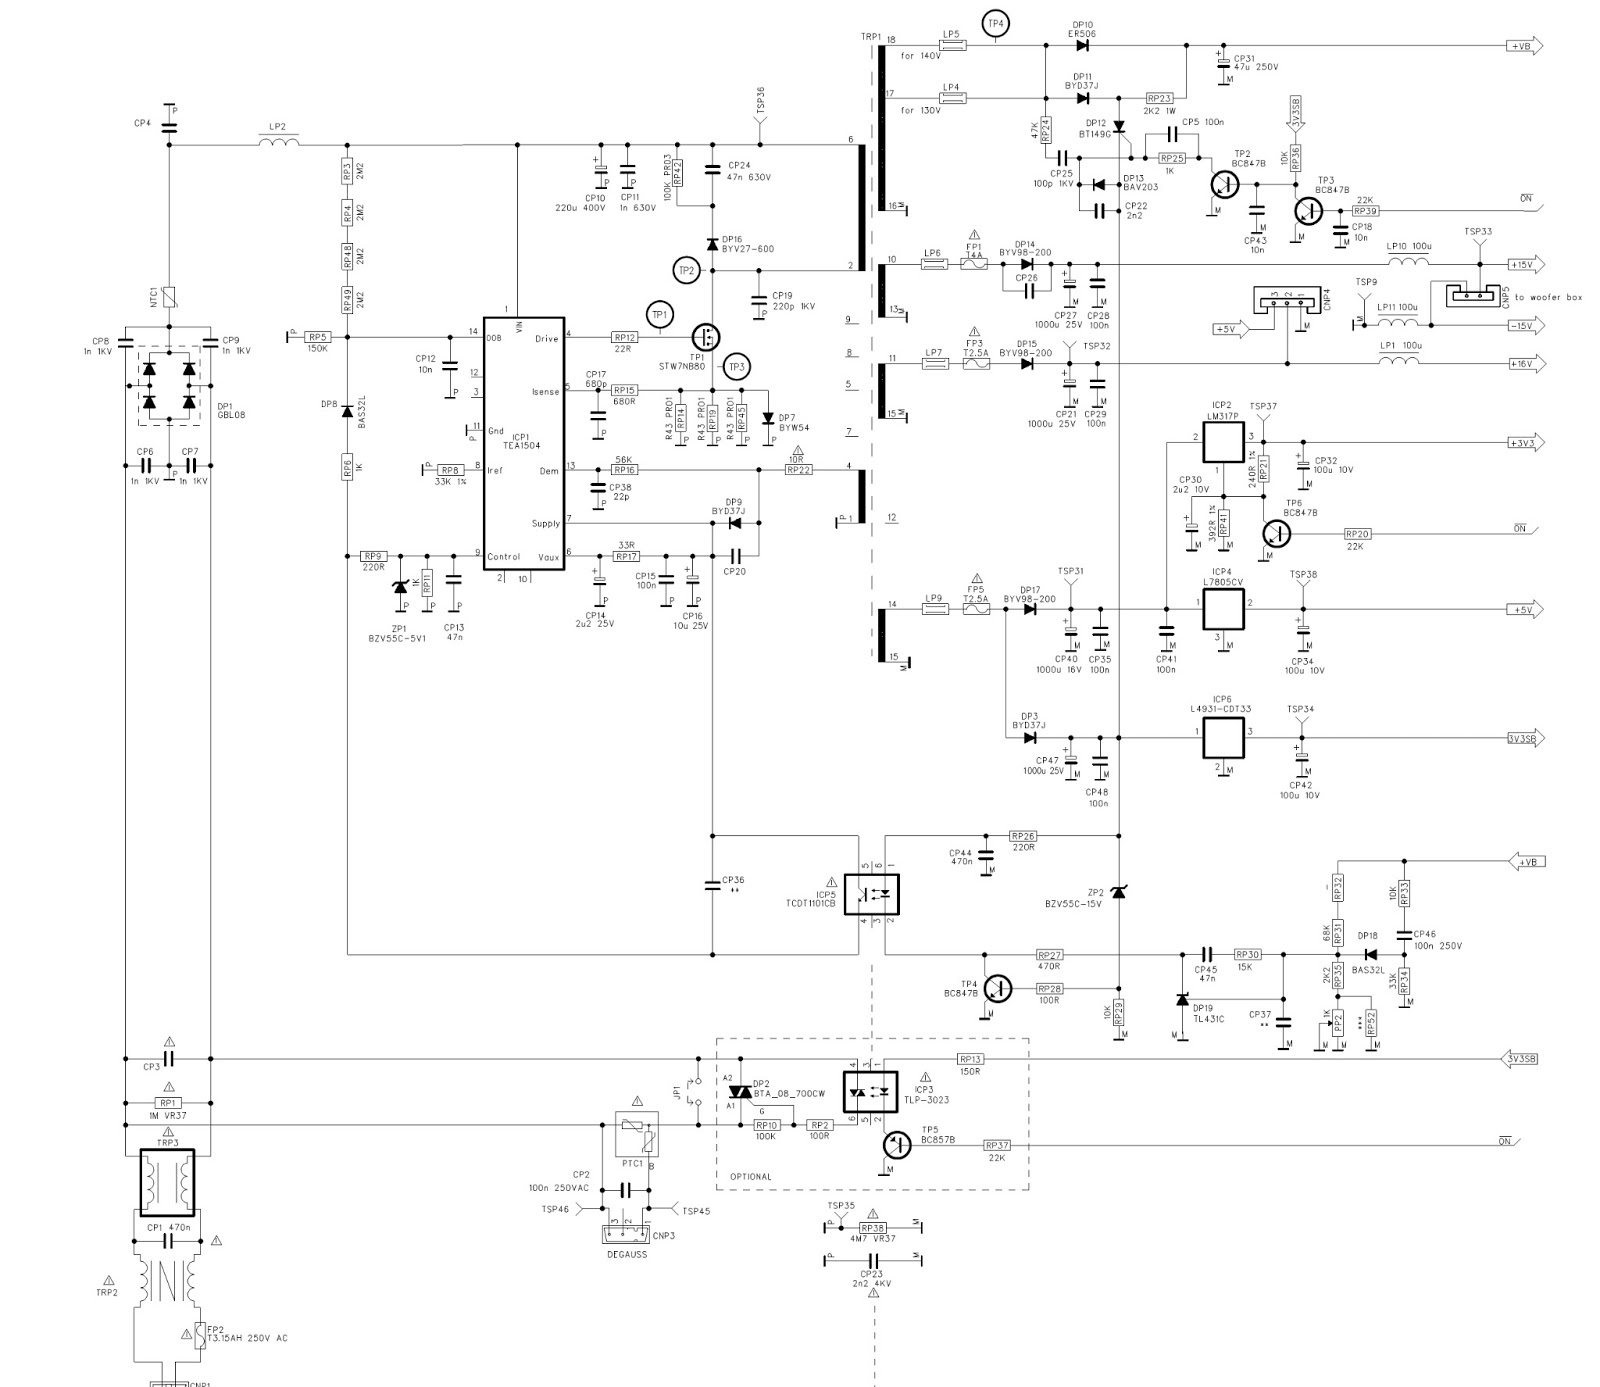 Regulator schematic click on image to enlarge